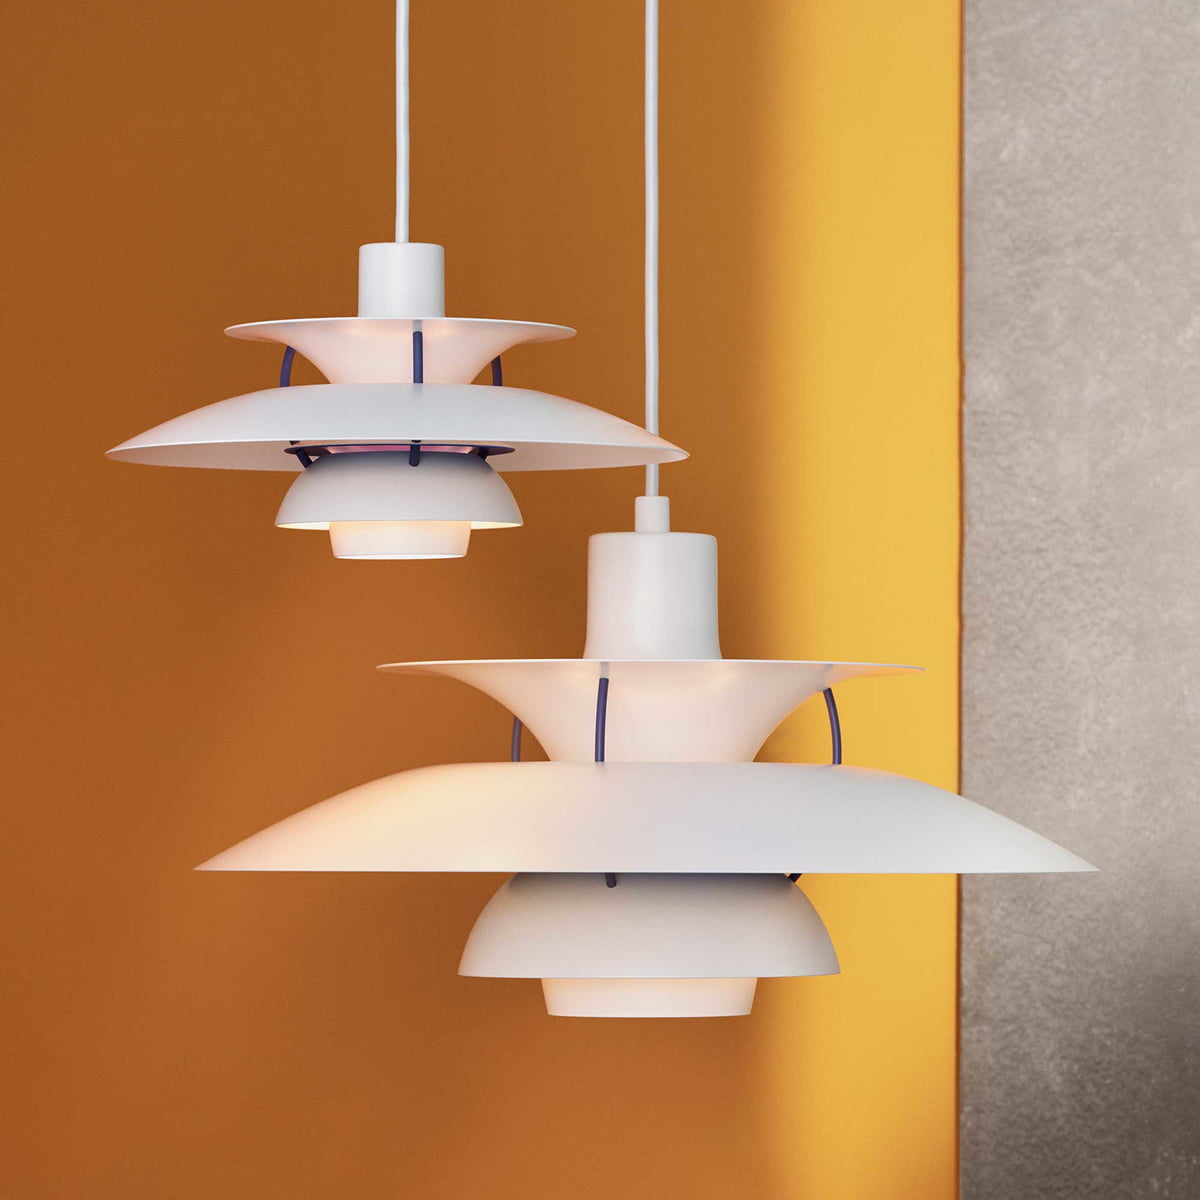 Ph 5 mini pendant lamp by louis poulsen louis poulsen ph 5 mini pendant lamp aloadofball Choice Image